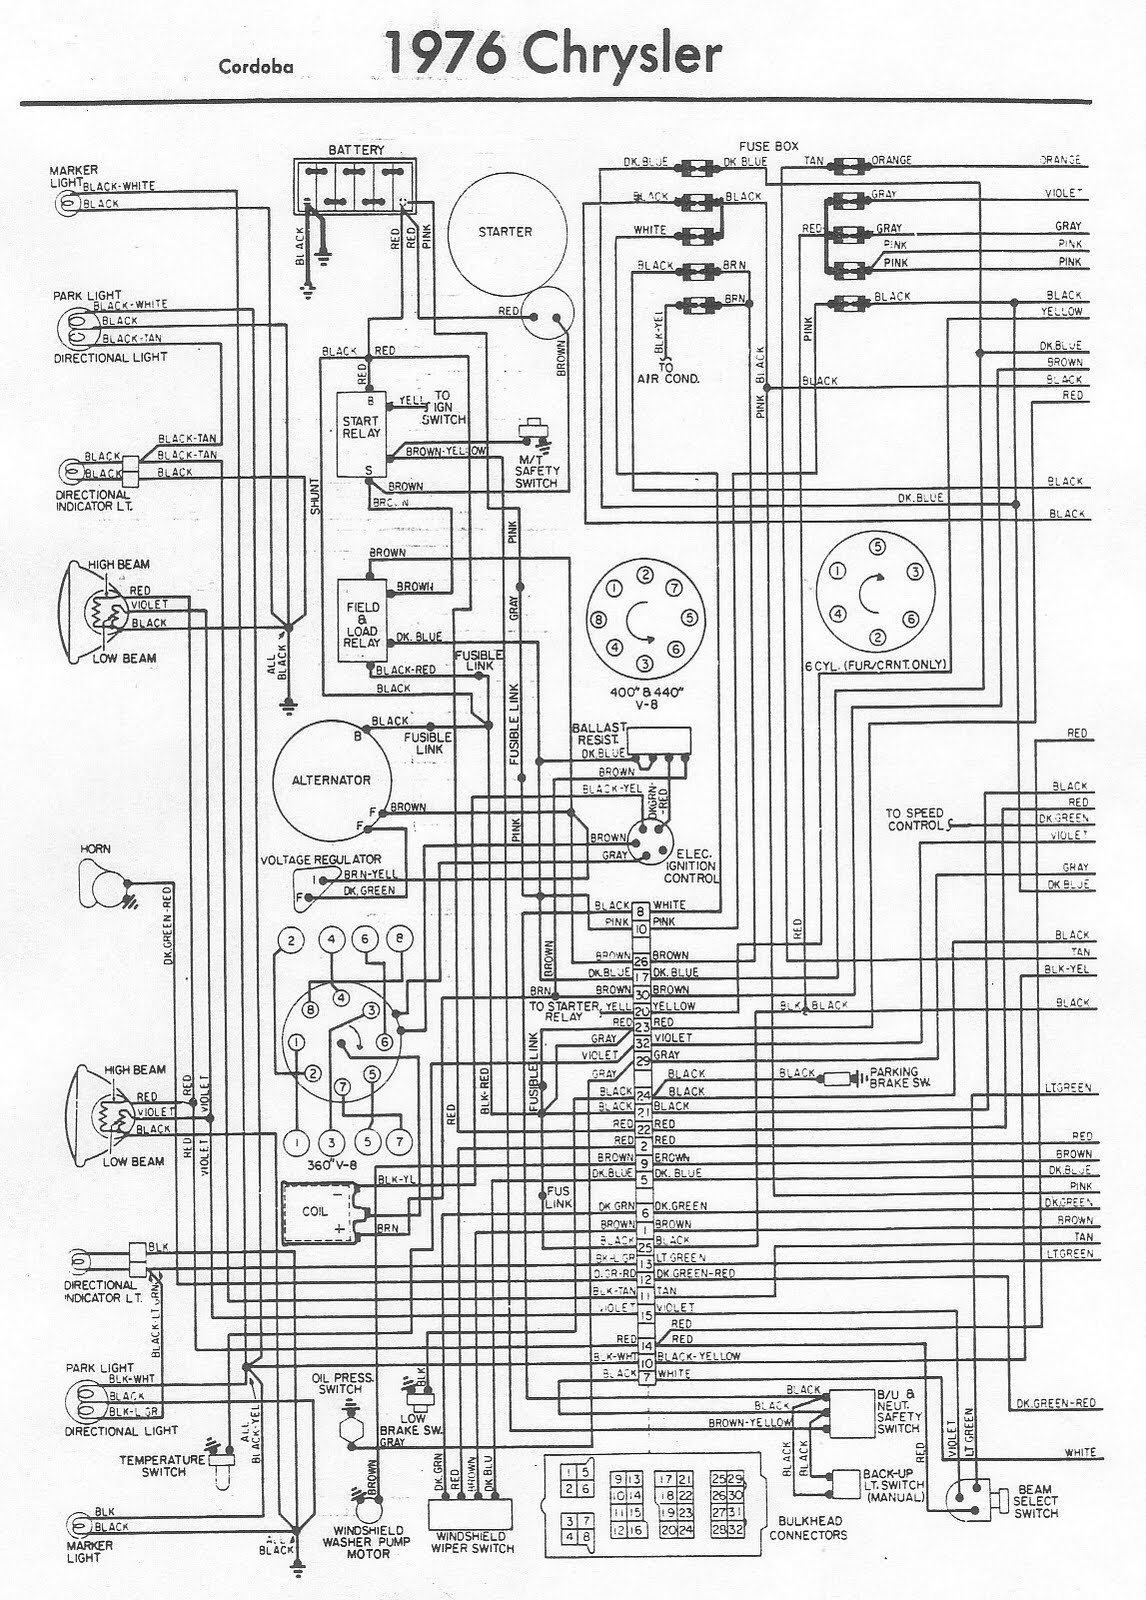 Diagram Free Auto Wiring Diagram 1976 Chrysler Cordoba Engine Compartment Wiring Diagram